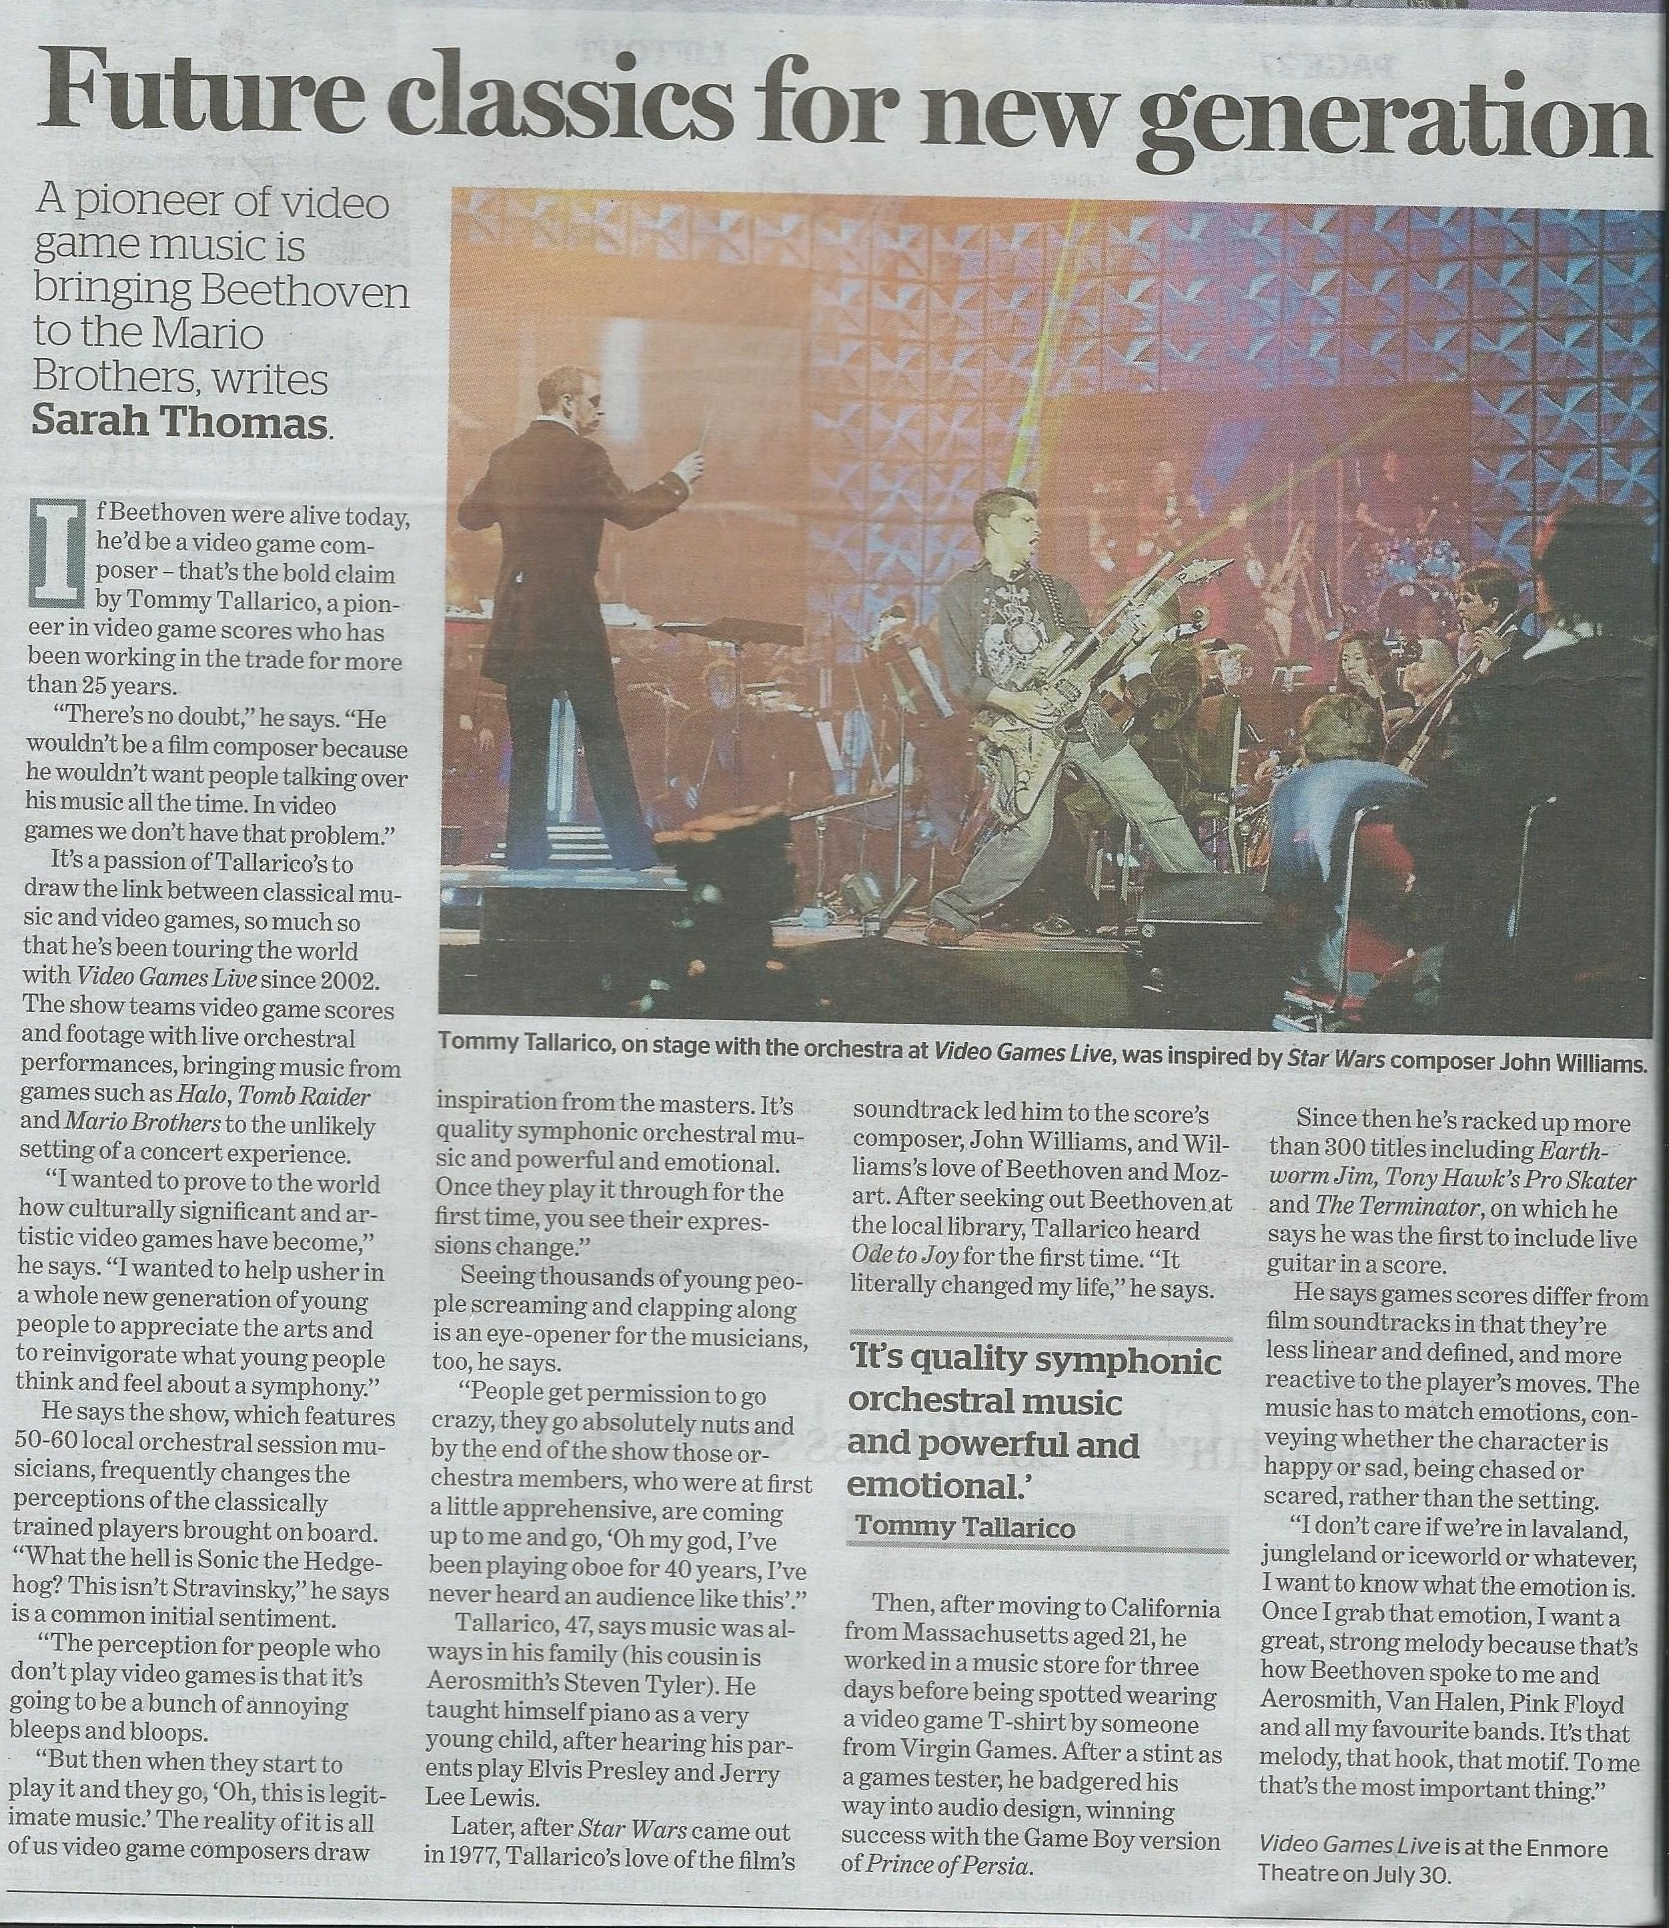 Video Games Live in SMH - 28th  July